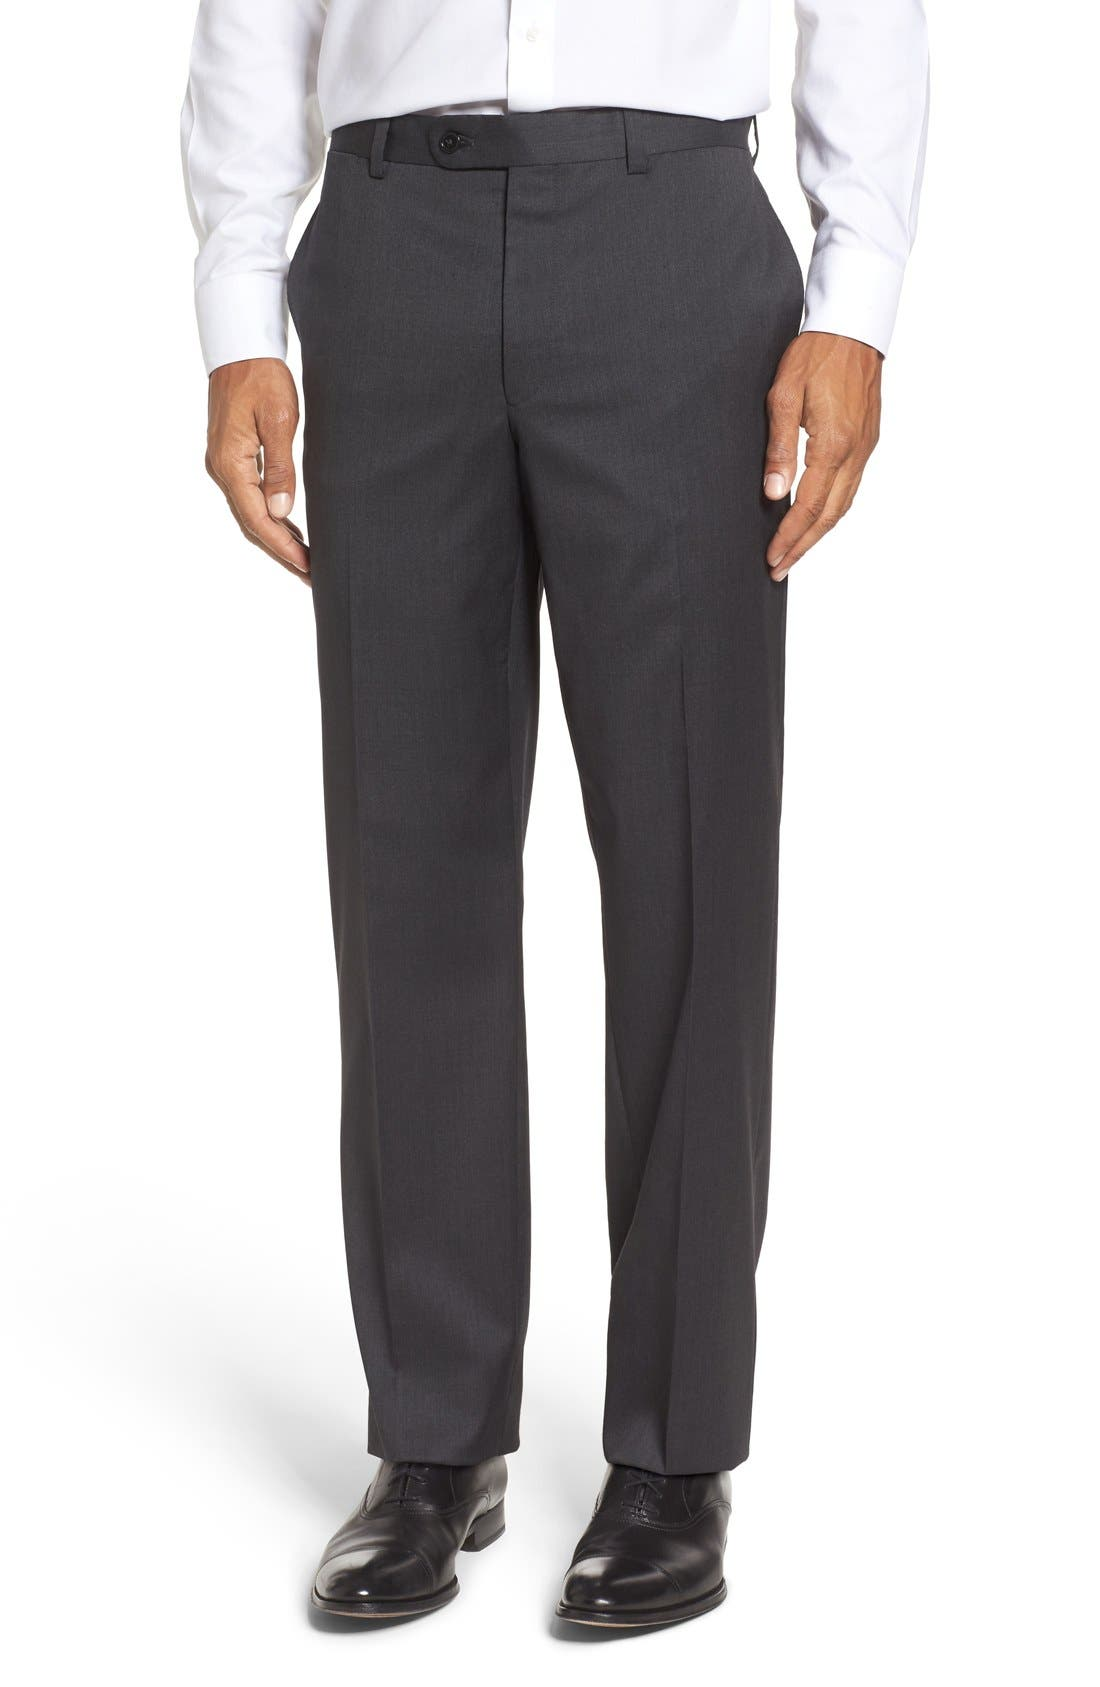 RIVIERA,                             Flat Front Solid Wool Trousers,                             Main thumbnail 1, color,                             010